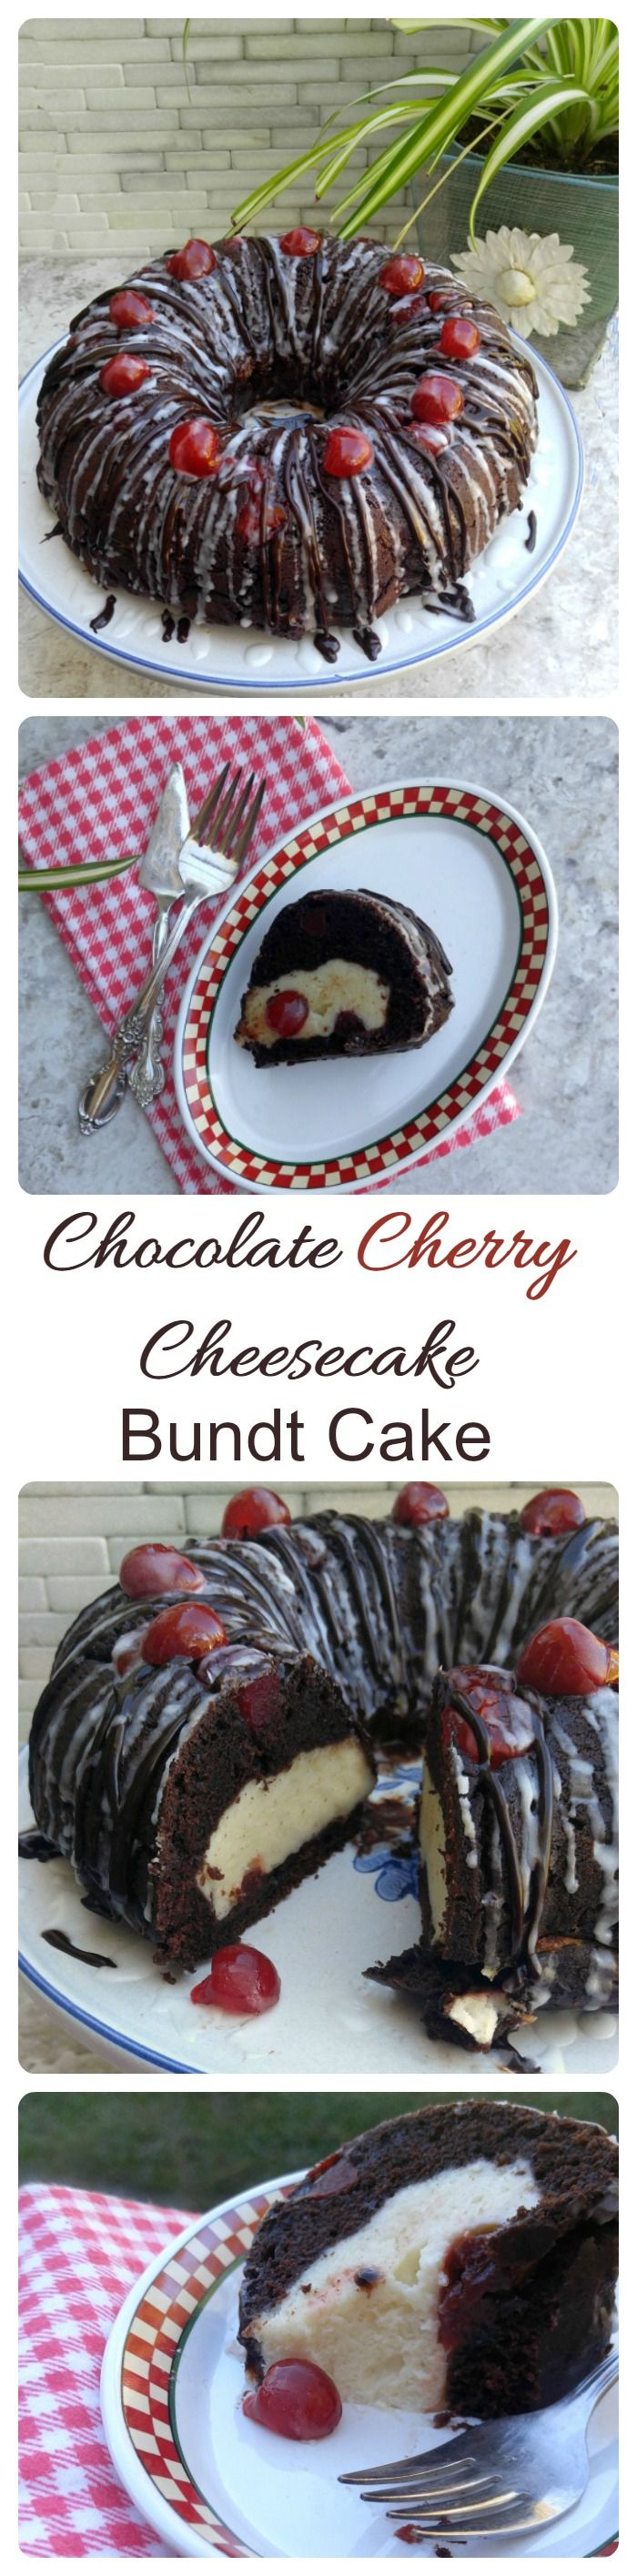 This Chocolate Cherry Cheesecake Bundt Cake is layer upon layer of delicious tastes.  It has a creamy center and rich, dark chocolate layers with both a white and dark chocolate glaze.